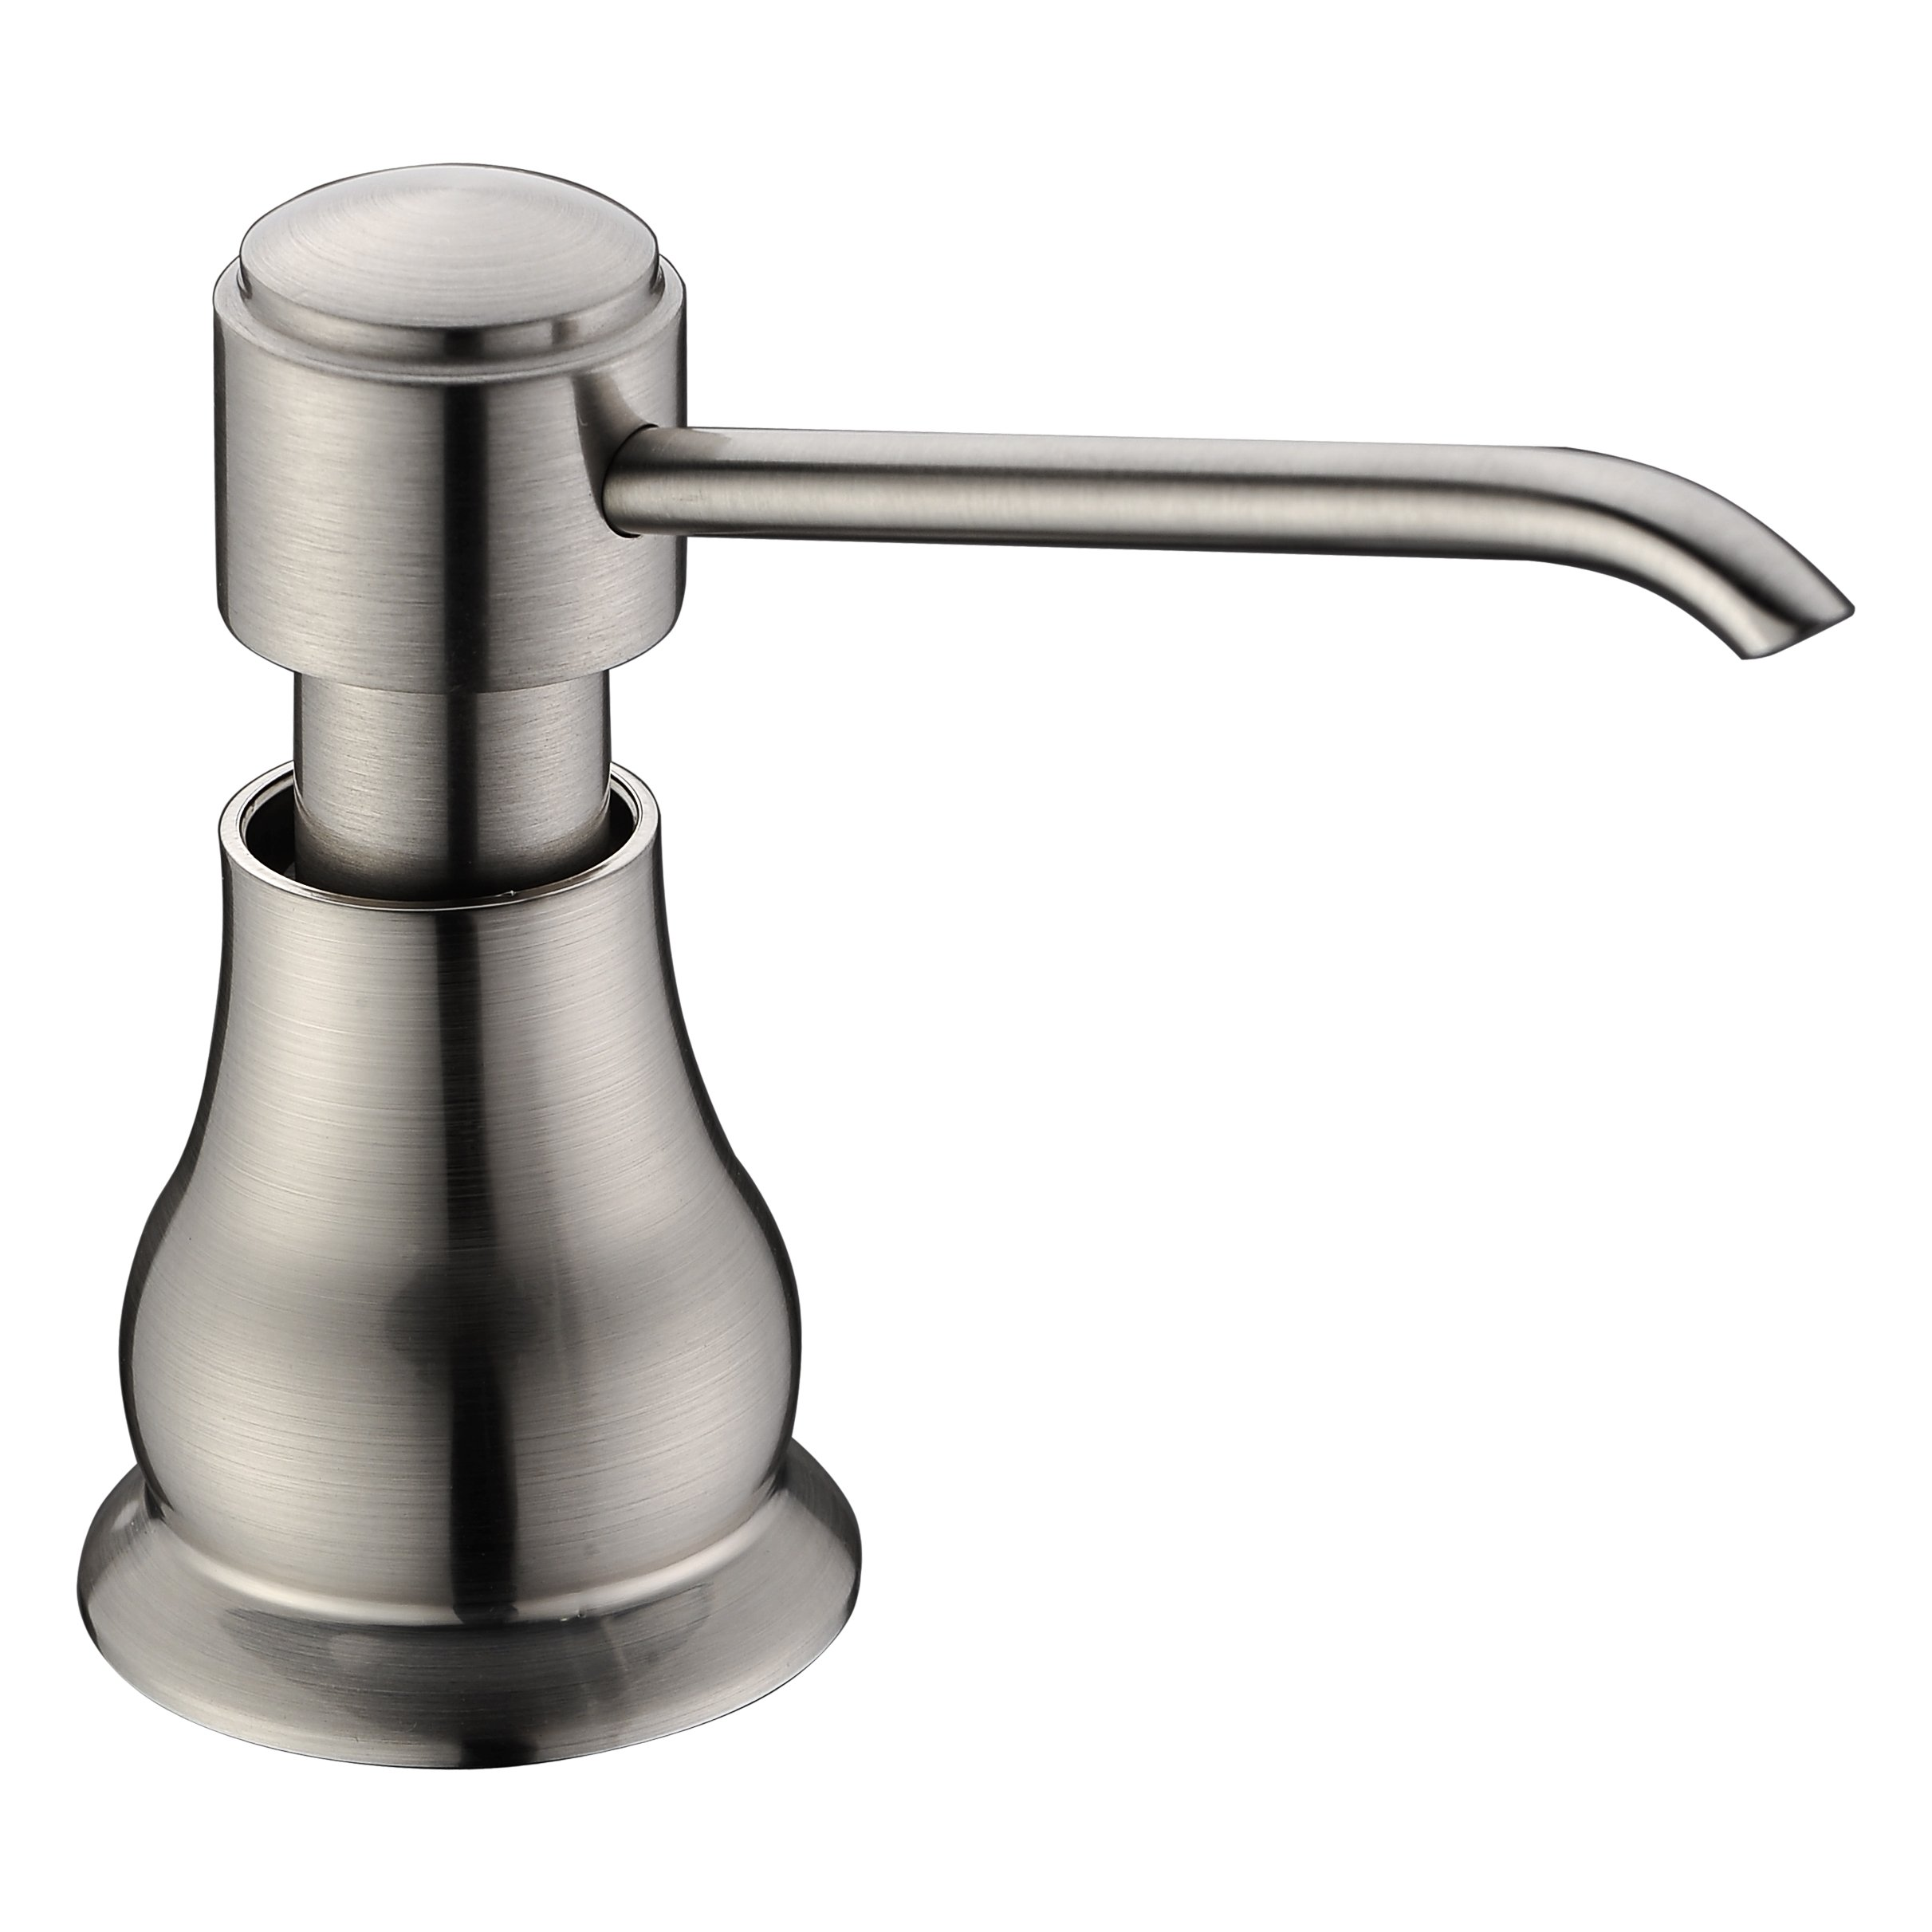 Brass Sink Soap Dispenser Pump Brushed Nickel Delle Rosa Brass Head Kitchen Sink Soap Dispenser Soap or Lotion Pump Dispenser